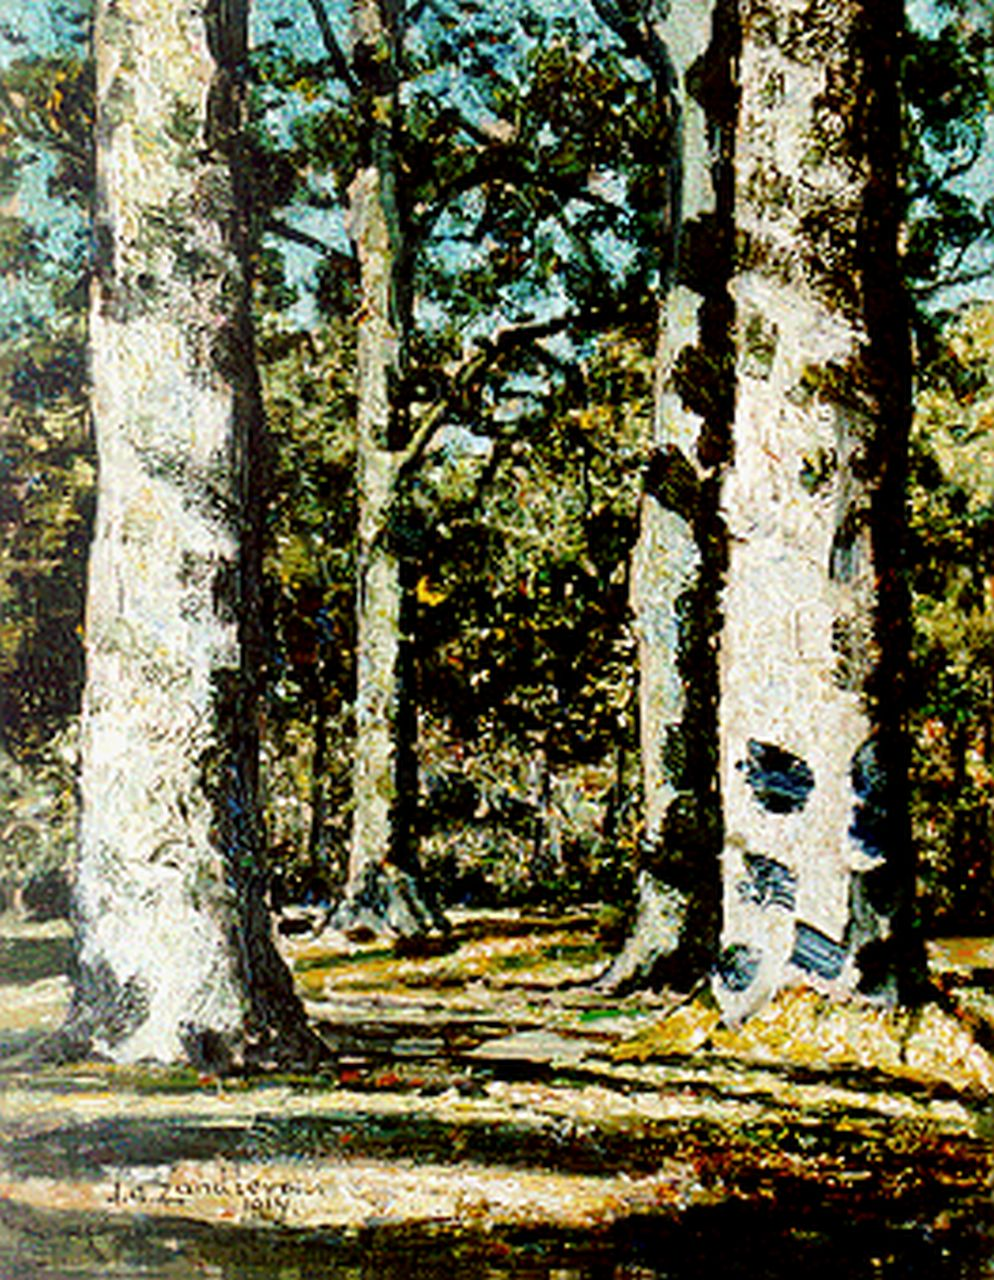 Zandleven J.A.  | Jan Adam Zandleven, A sunlit wooded landscape, oil on canvas laid down on painter's board 41.0 x 32.0 cm, signed l.l. and dated 1914